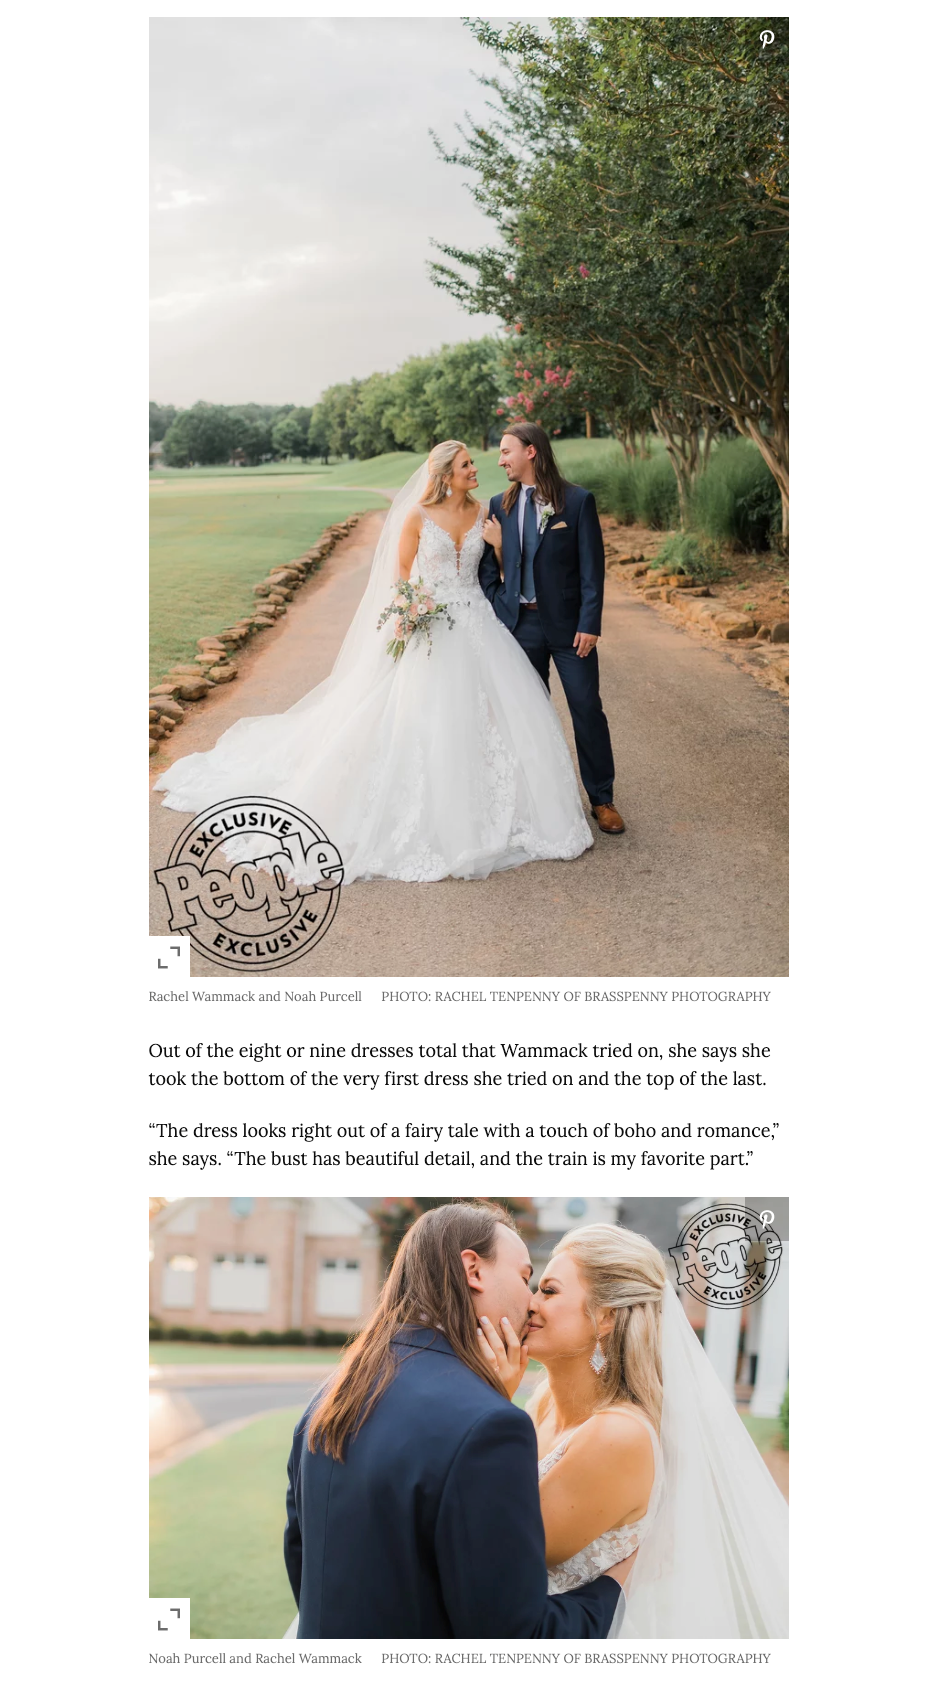 Editorial Coverage #JASbride Rachel Wammack in People